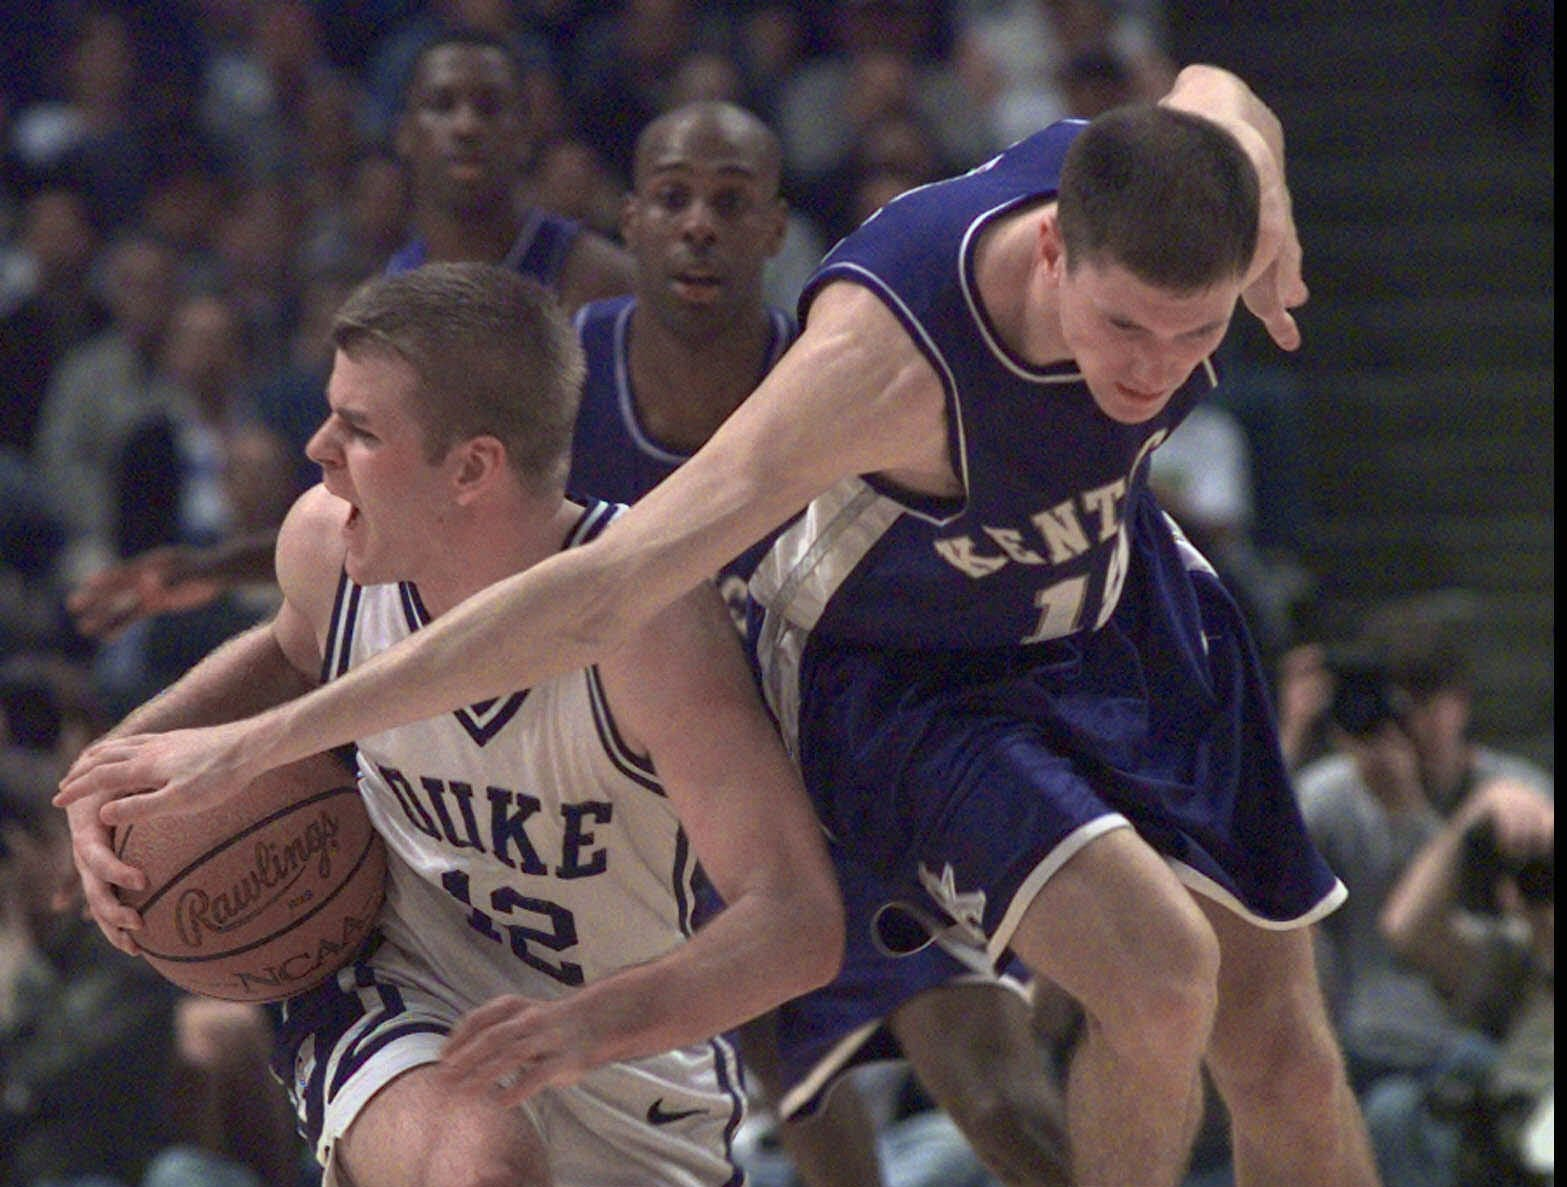 Duke's Steve Wojciechowski (12) tries to hang onto the ball as Kentucky's Jeff Sheppard tries to get possession during action in the NCAA South Regional Final in St. Petersburg, Fla. Sunday, March 22, 1998. Kentucky came on strong in the last minutes of the game and defeated Duke 86-84.